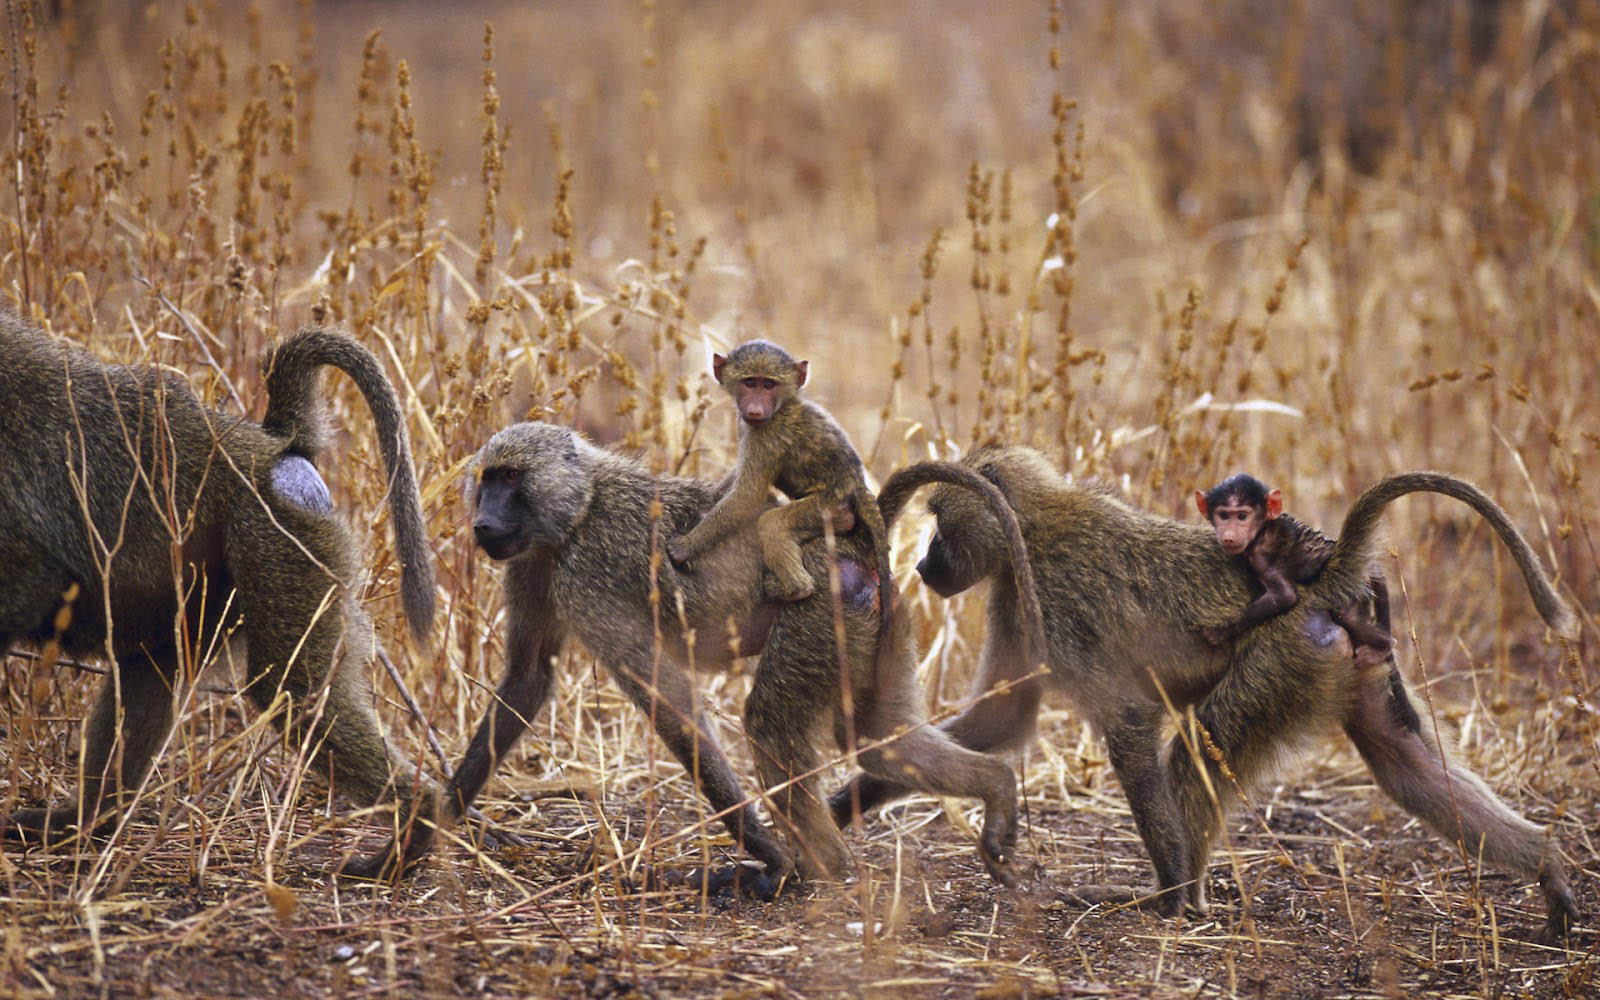 Monkey Family – Group of Monkey